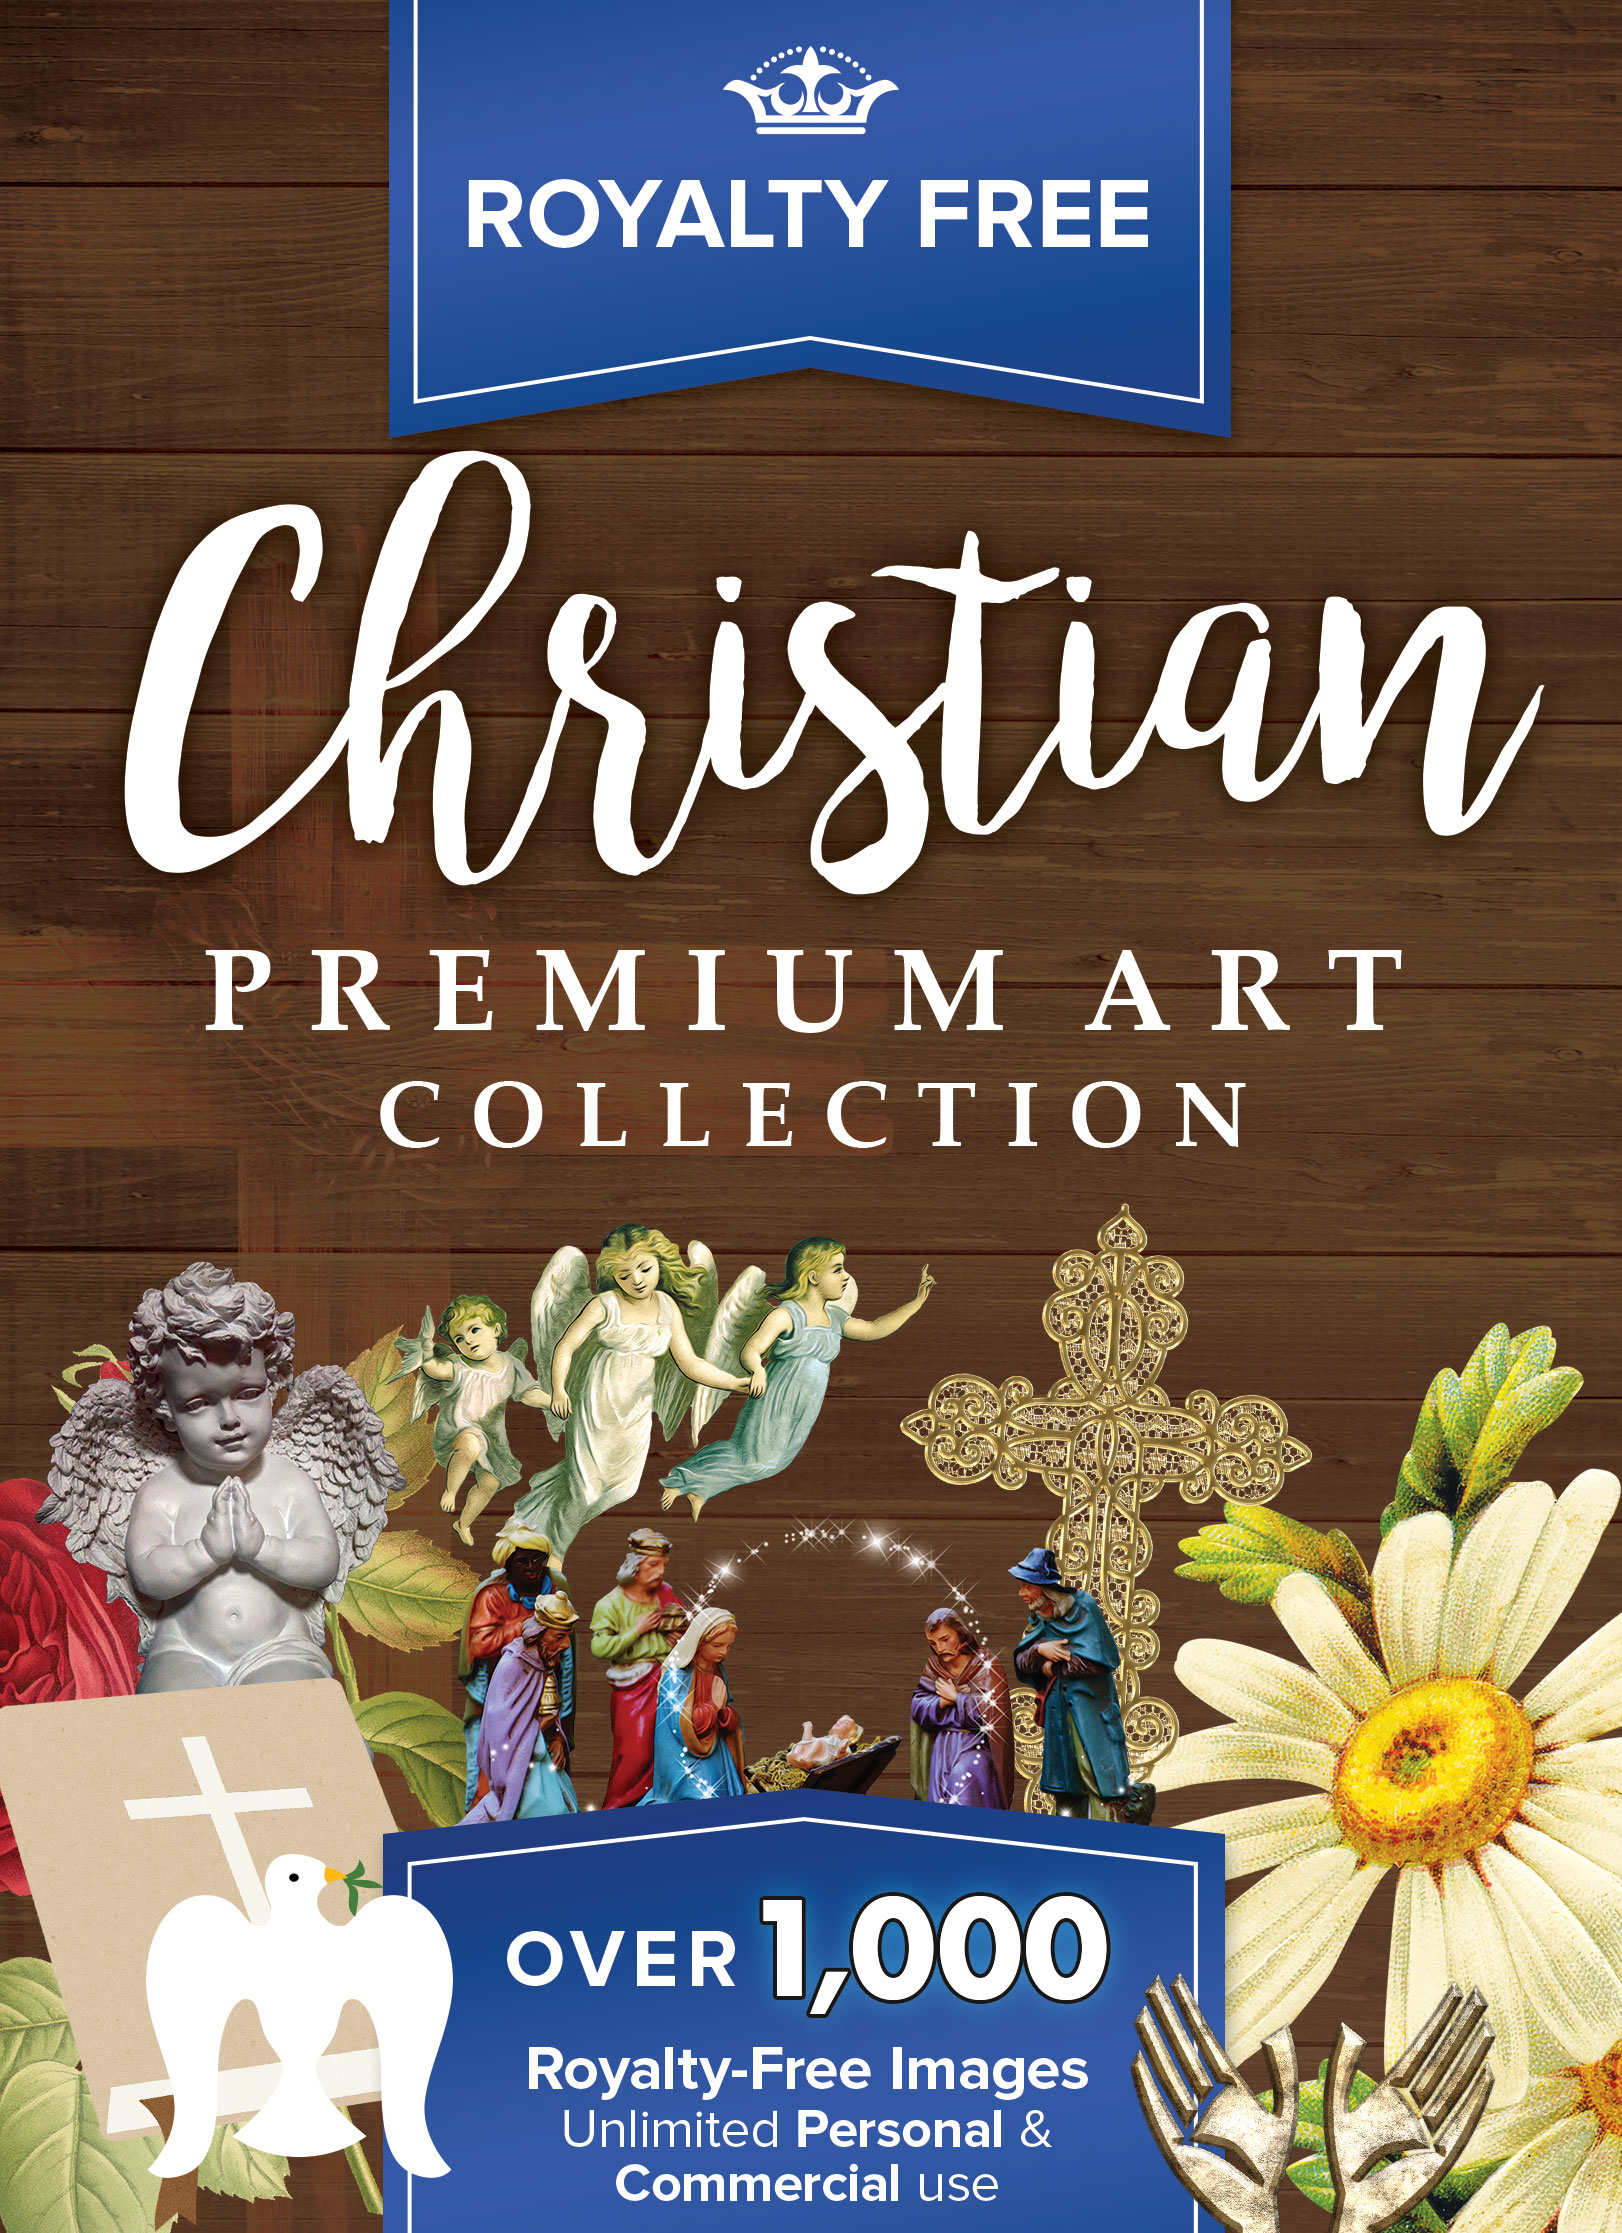 Royalty Free Premium Christian Images for PC [Download] (Software Publishing Home)